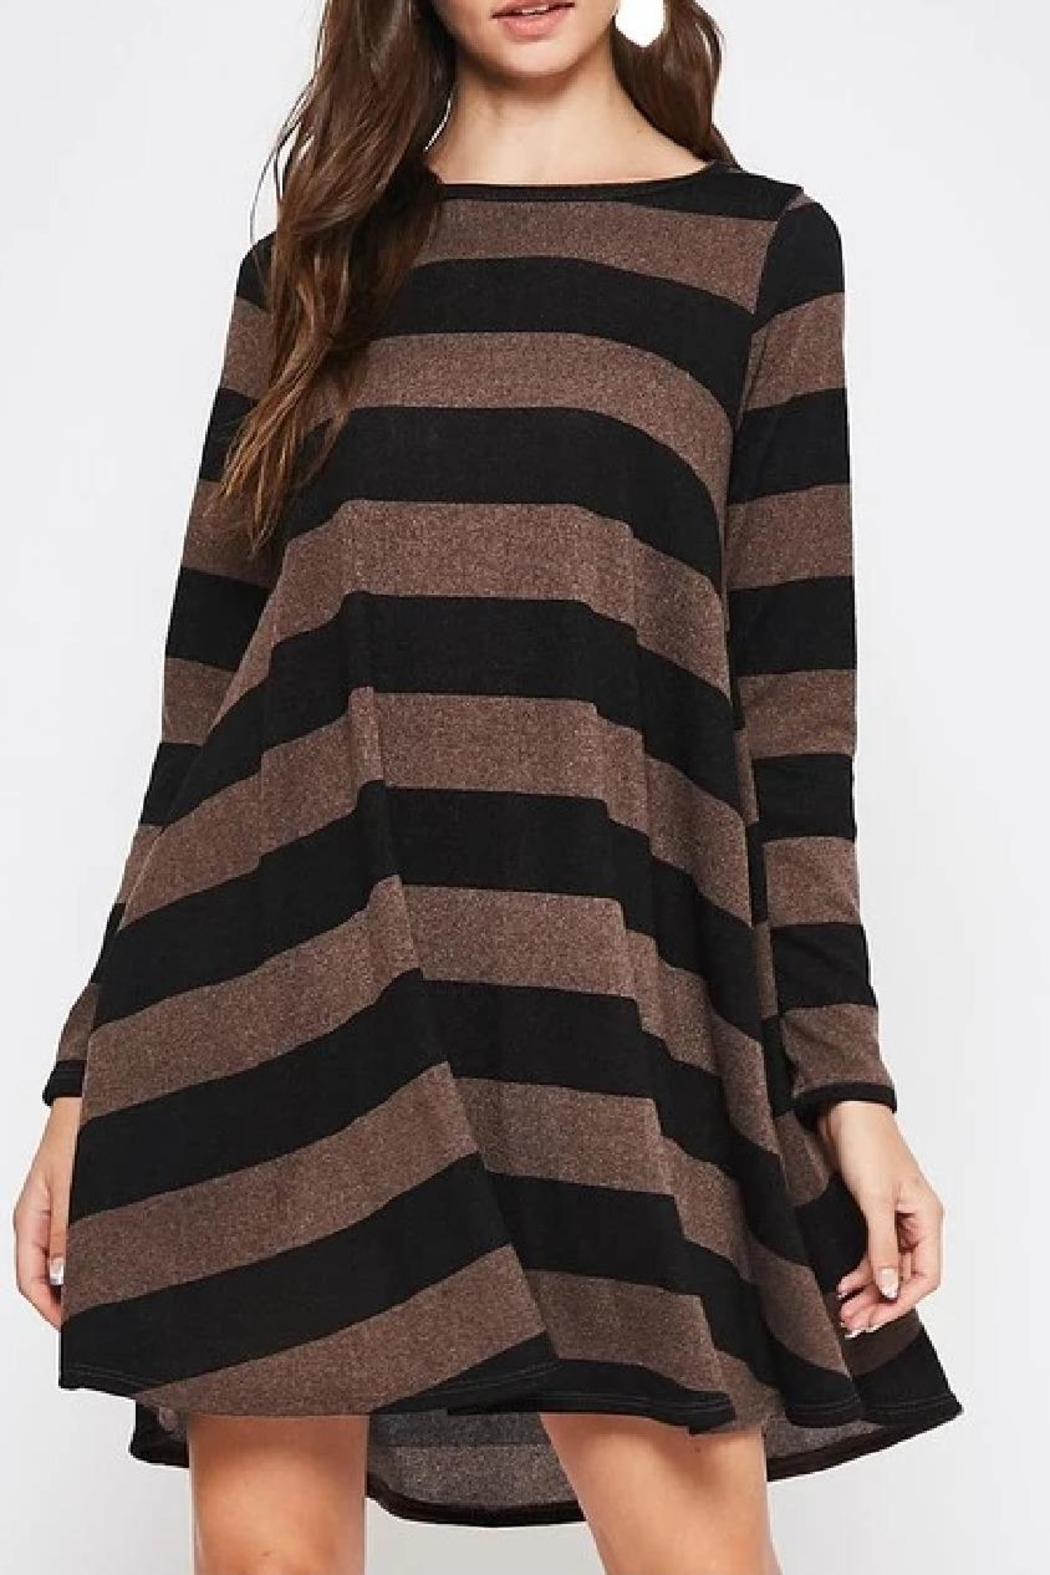 Beeson River Striped Tunic-Pocket Dress - Main Image